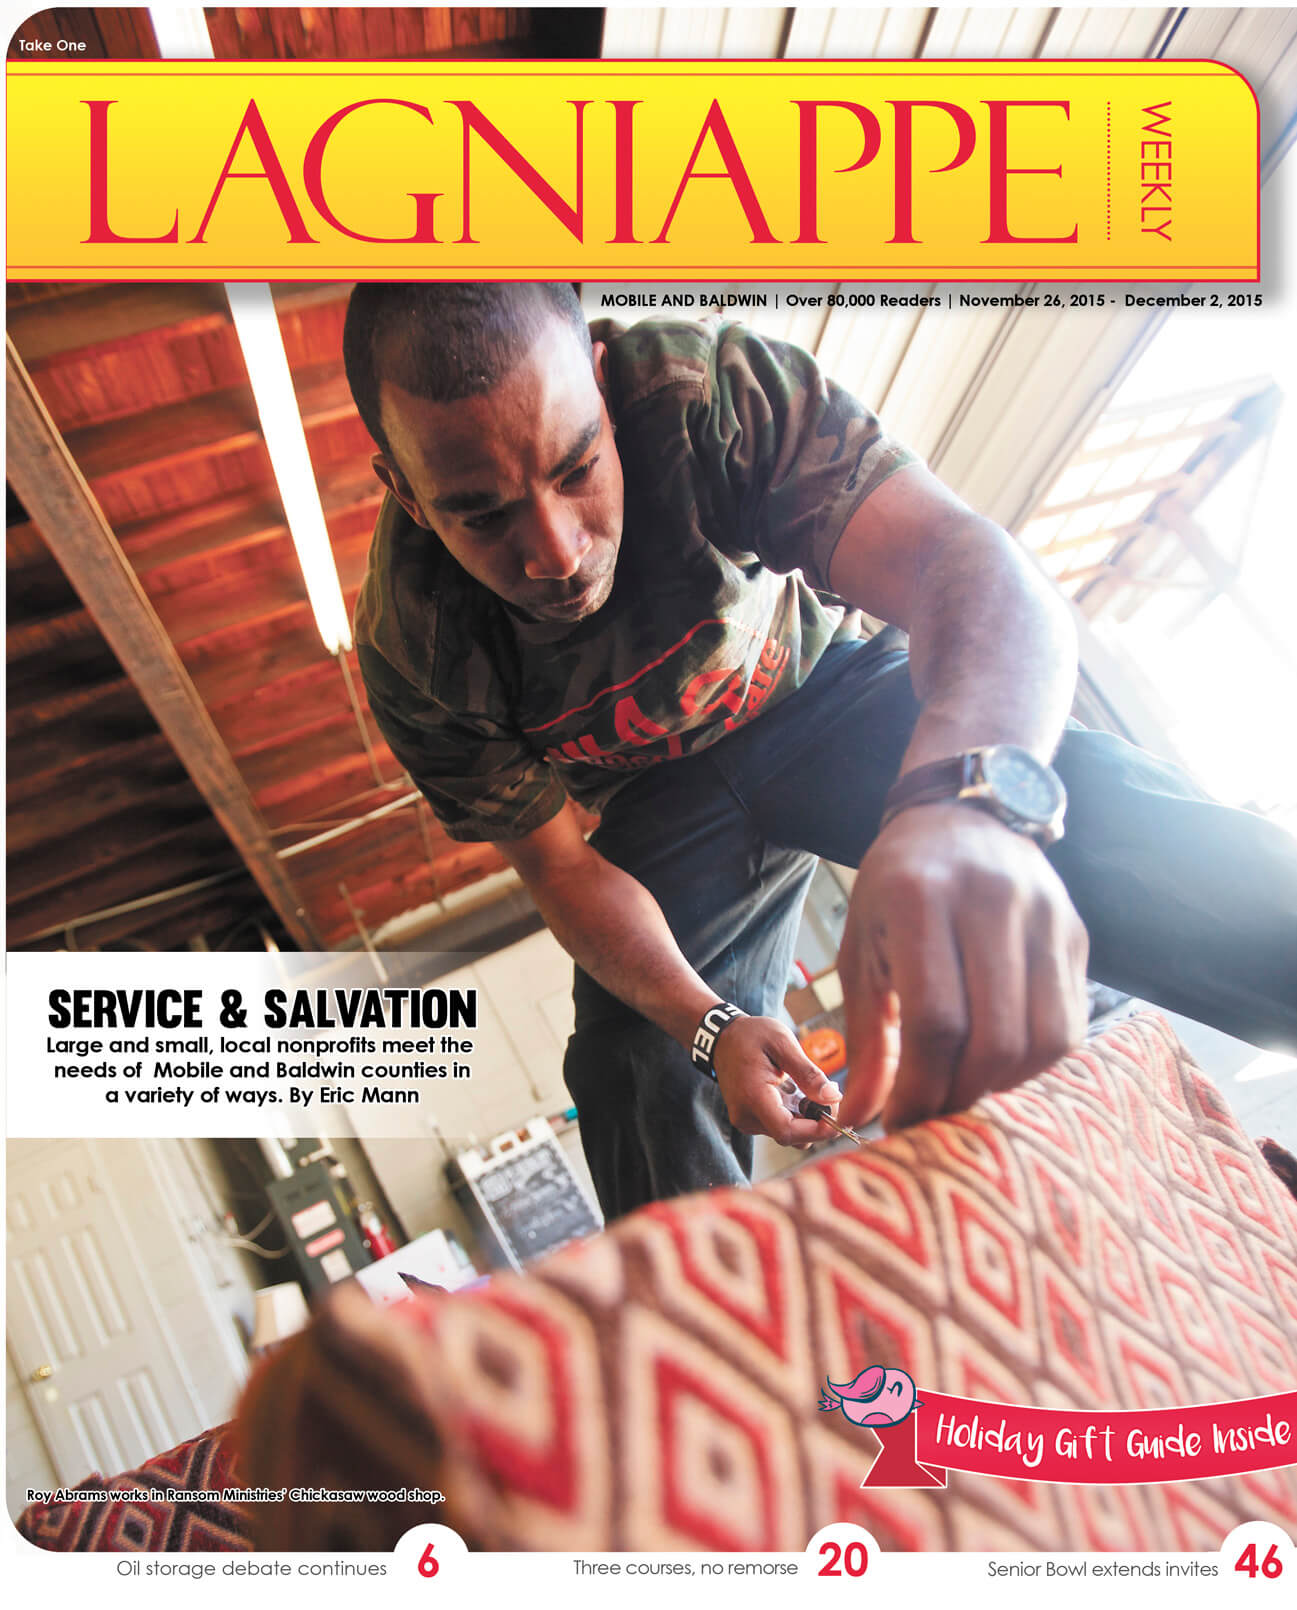 COVER STORY: Nonprofits meet needs in Mobile and Baldwin counties